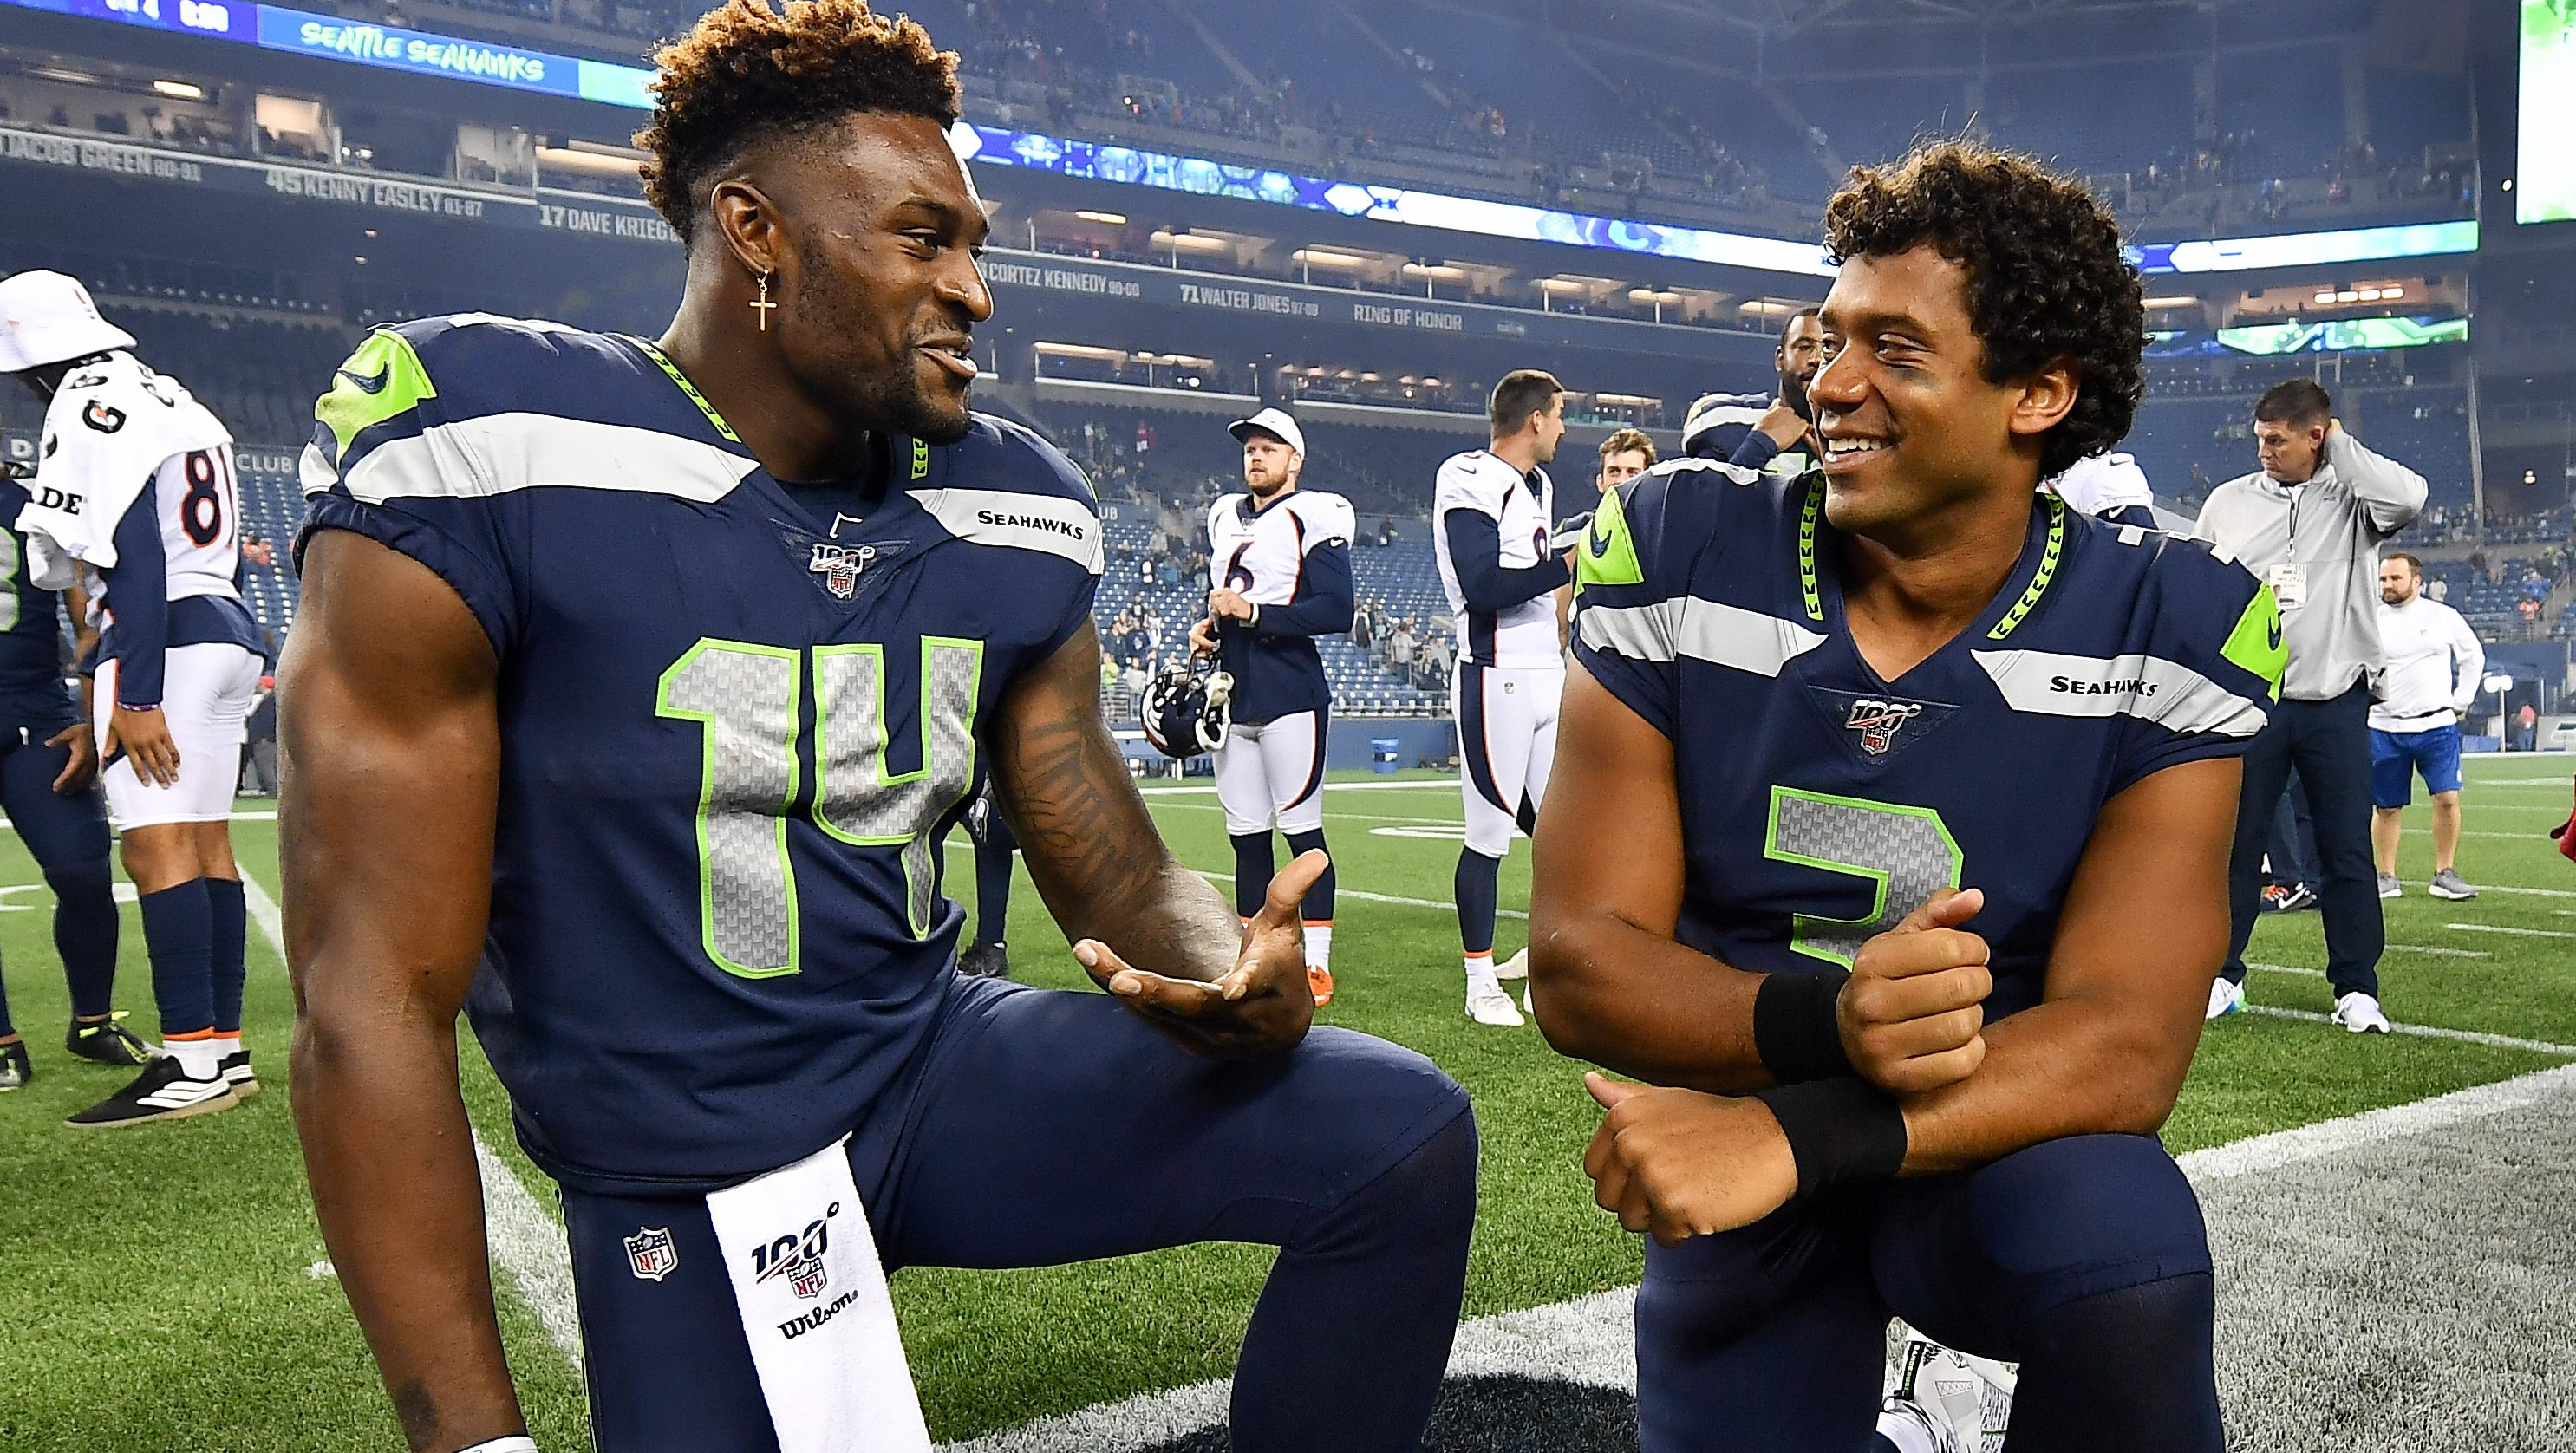 Seahawks Dk Metcalf Shines In Workout With Russell Wilson Heavy Com